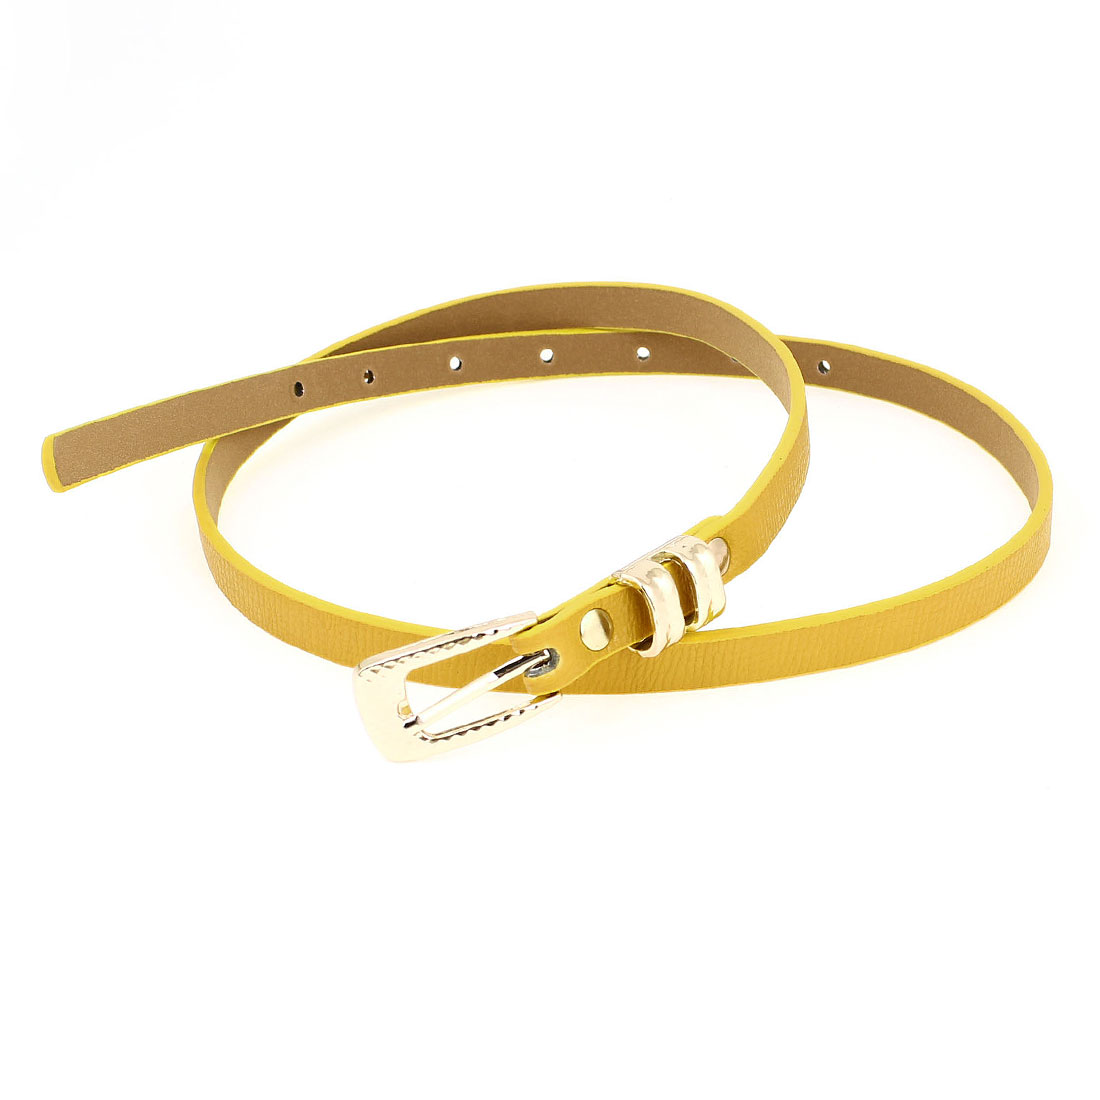 Women Prong Pin Buckle Faux Leather Waistband Cinch Belt Ornament Yellow